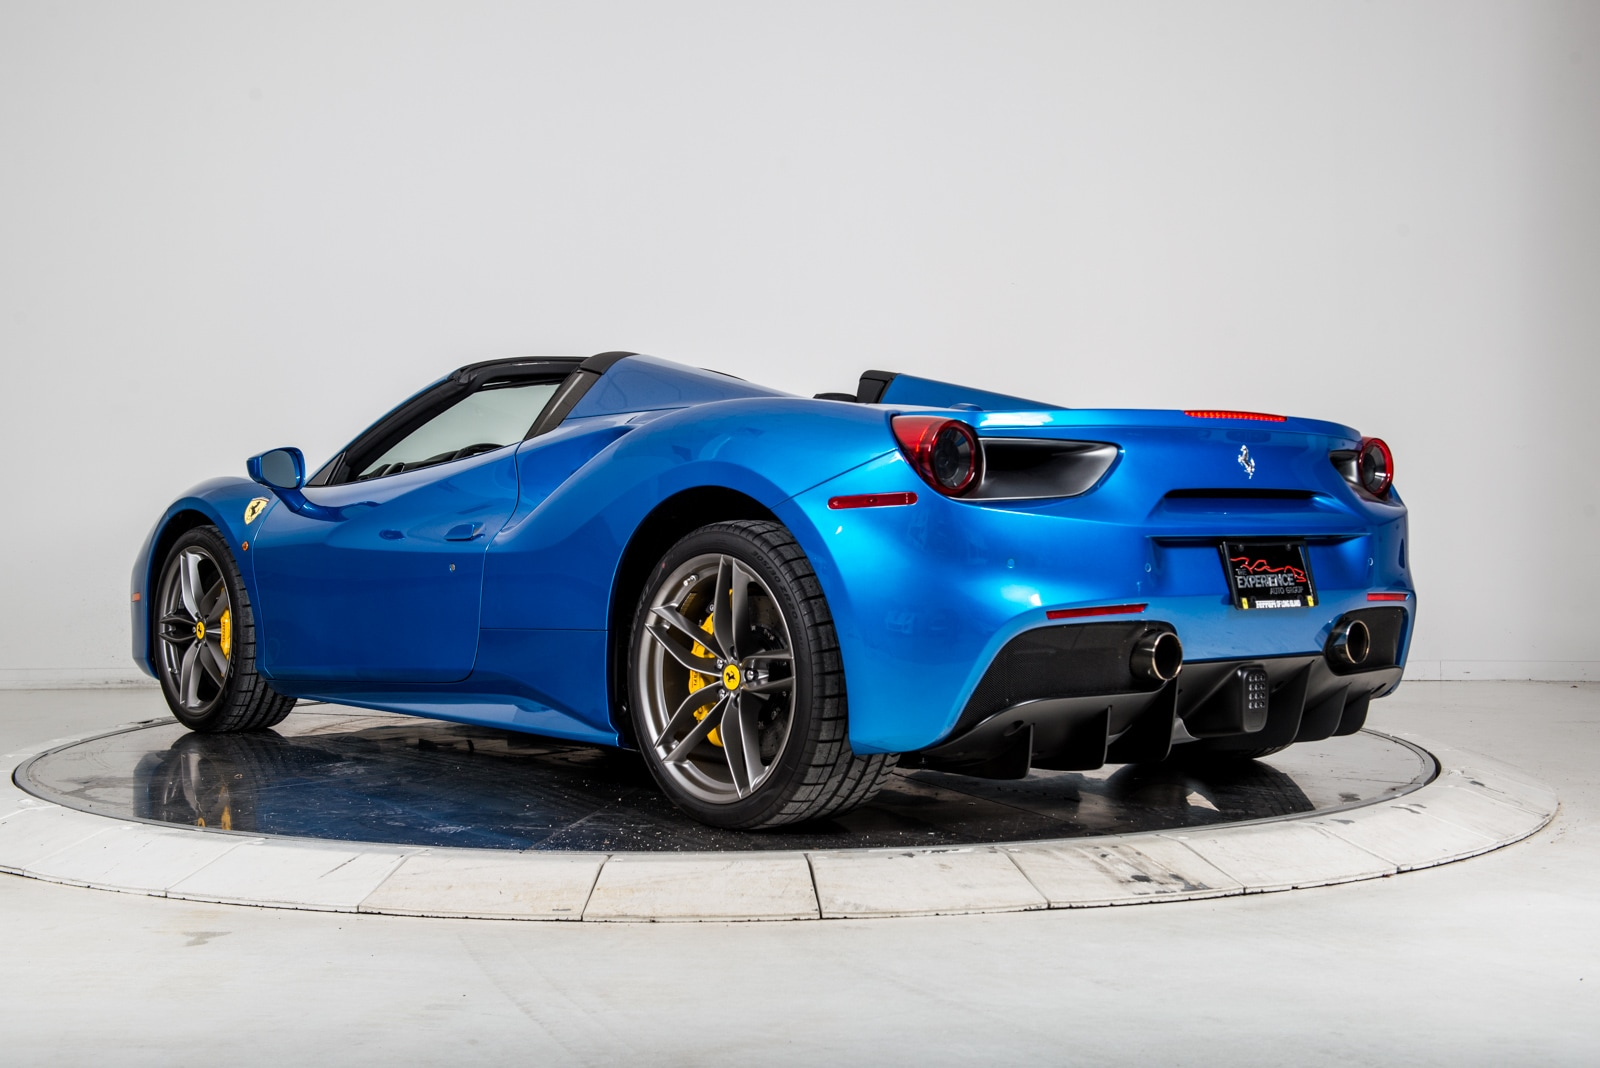 used 2016 ferrari 488 spider for sale plainview near long island ny vin zff80ama0g0218933. Black Bedroom Furniture Sets. Home Design Ideas